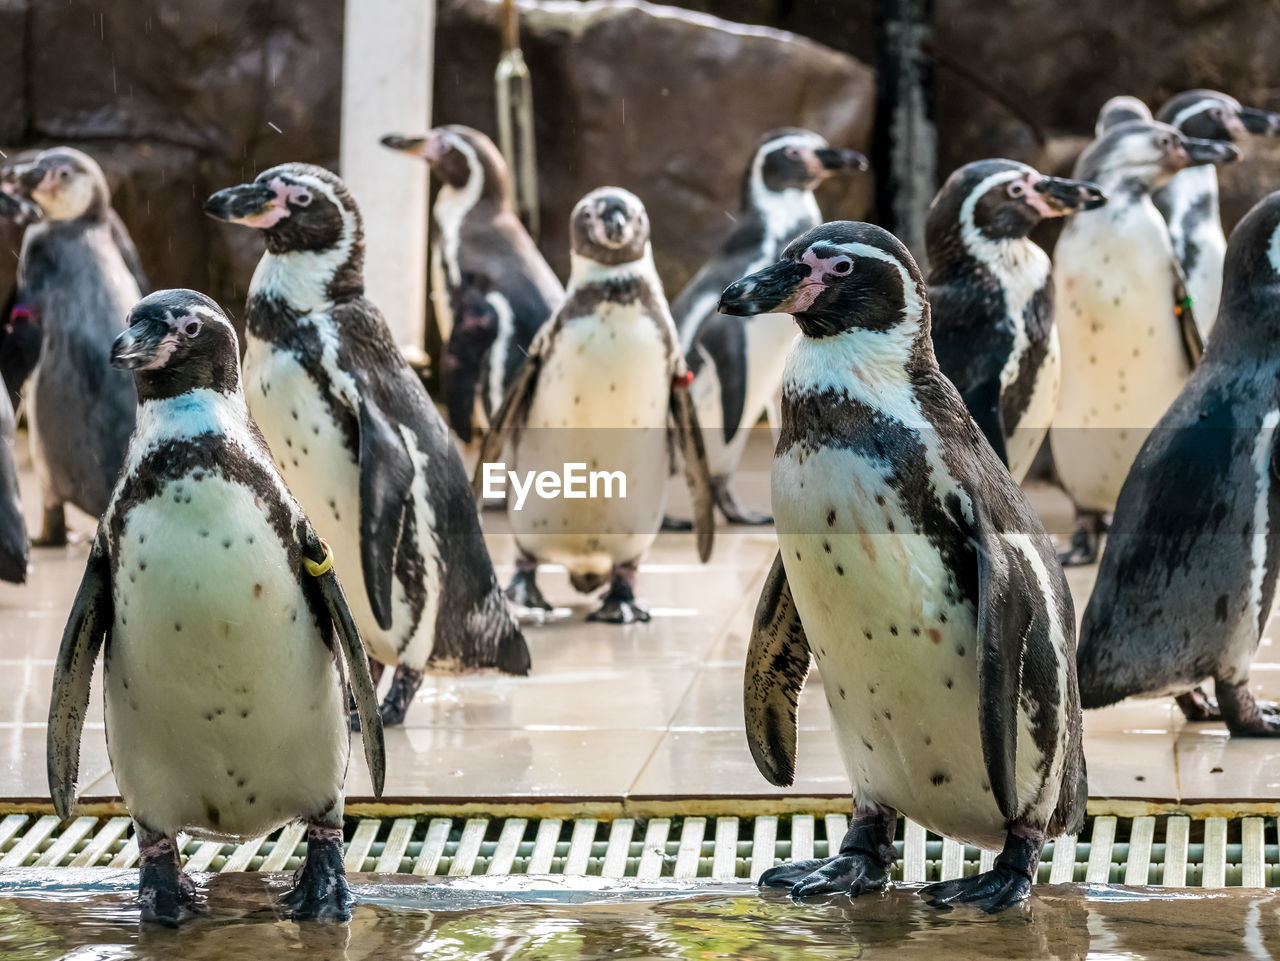 bird, animal themes, animal, group of animals, vertebrate, animals in the wild, animal wildlife, day, focus on foreground, no people, large group of animals, penguin, nature, outdoors, close-up, animals in captivity, perching, metal, flock of birds